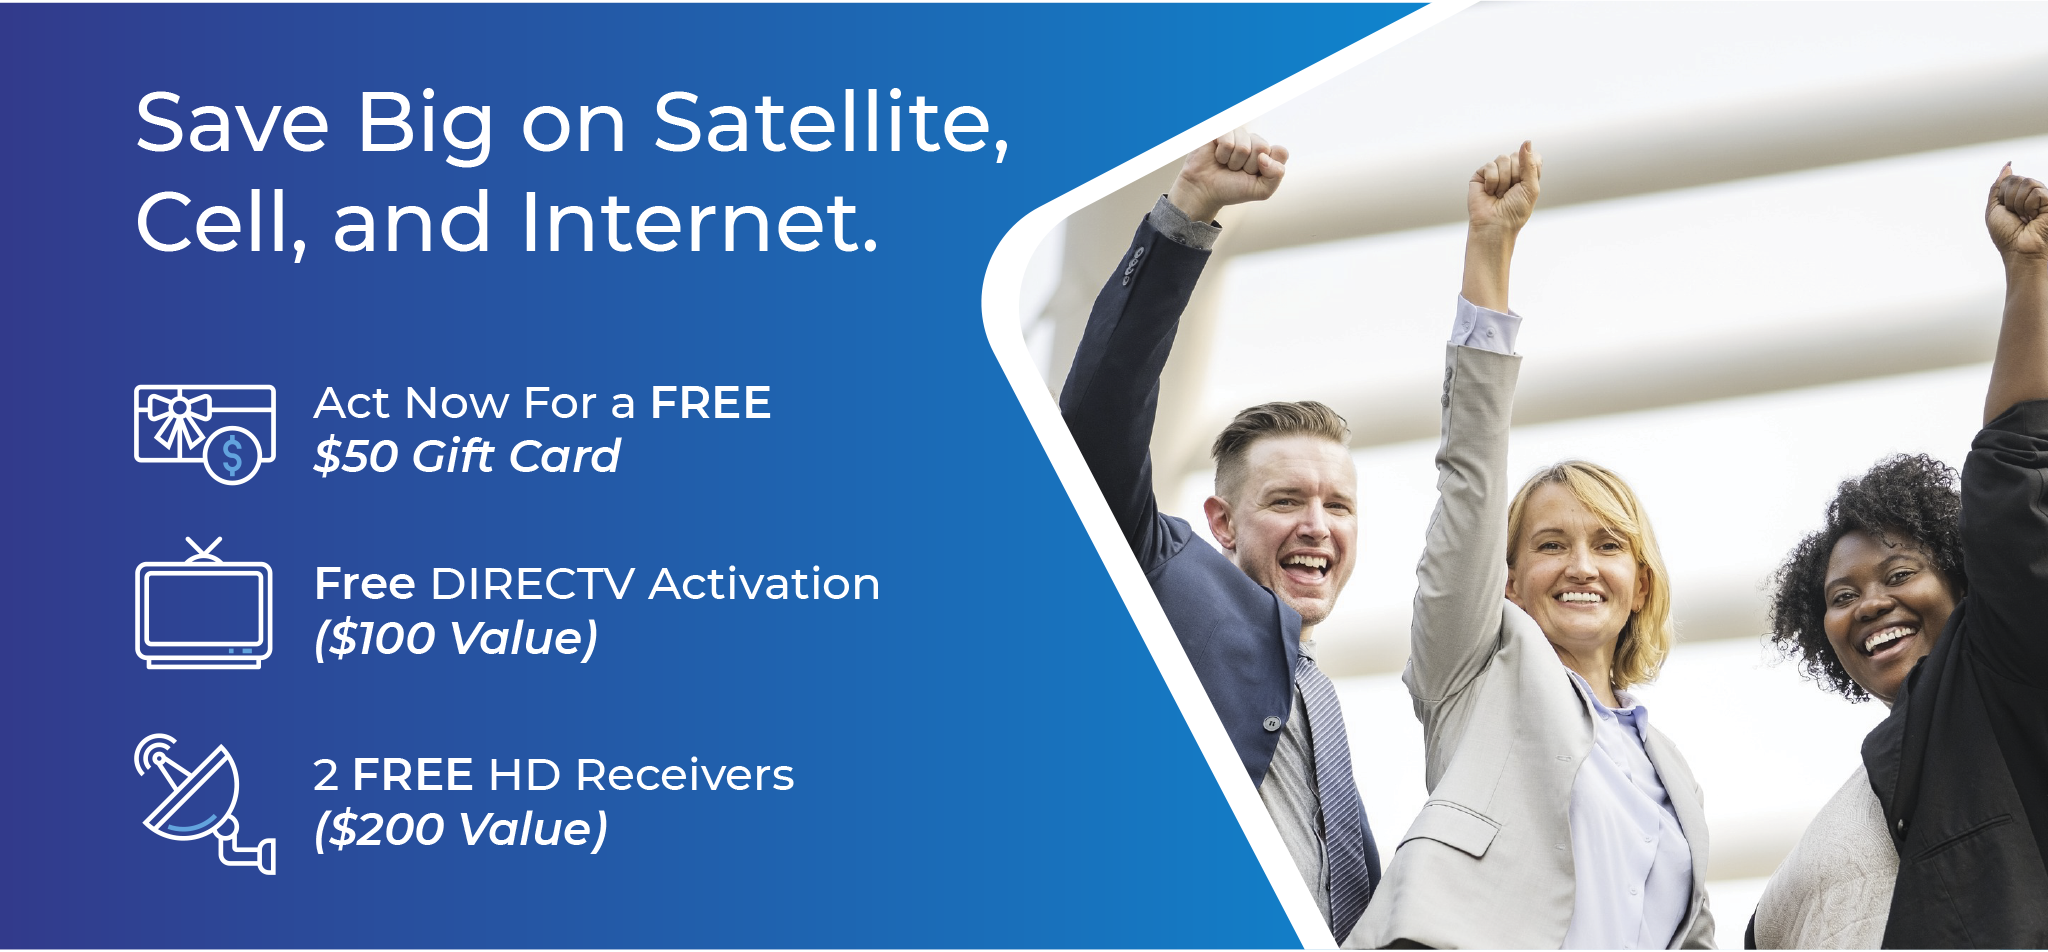 Save Big on Satellite TV, Cellular Service and Equipment, and Internet